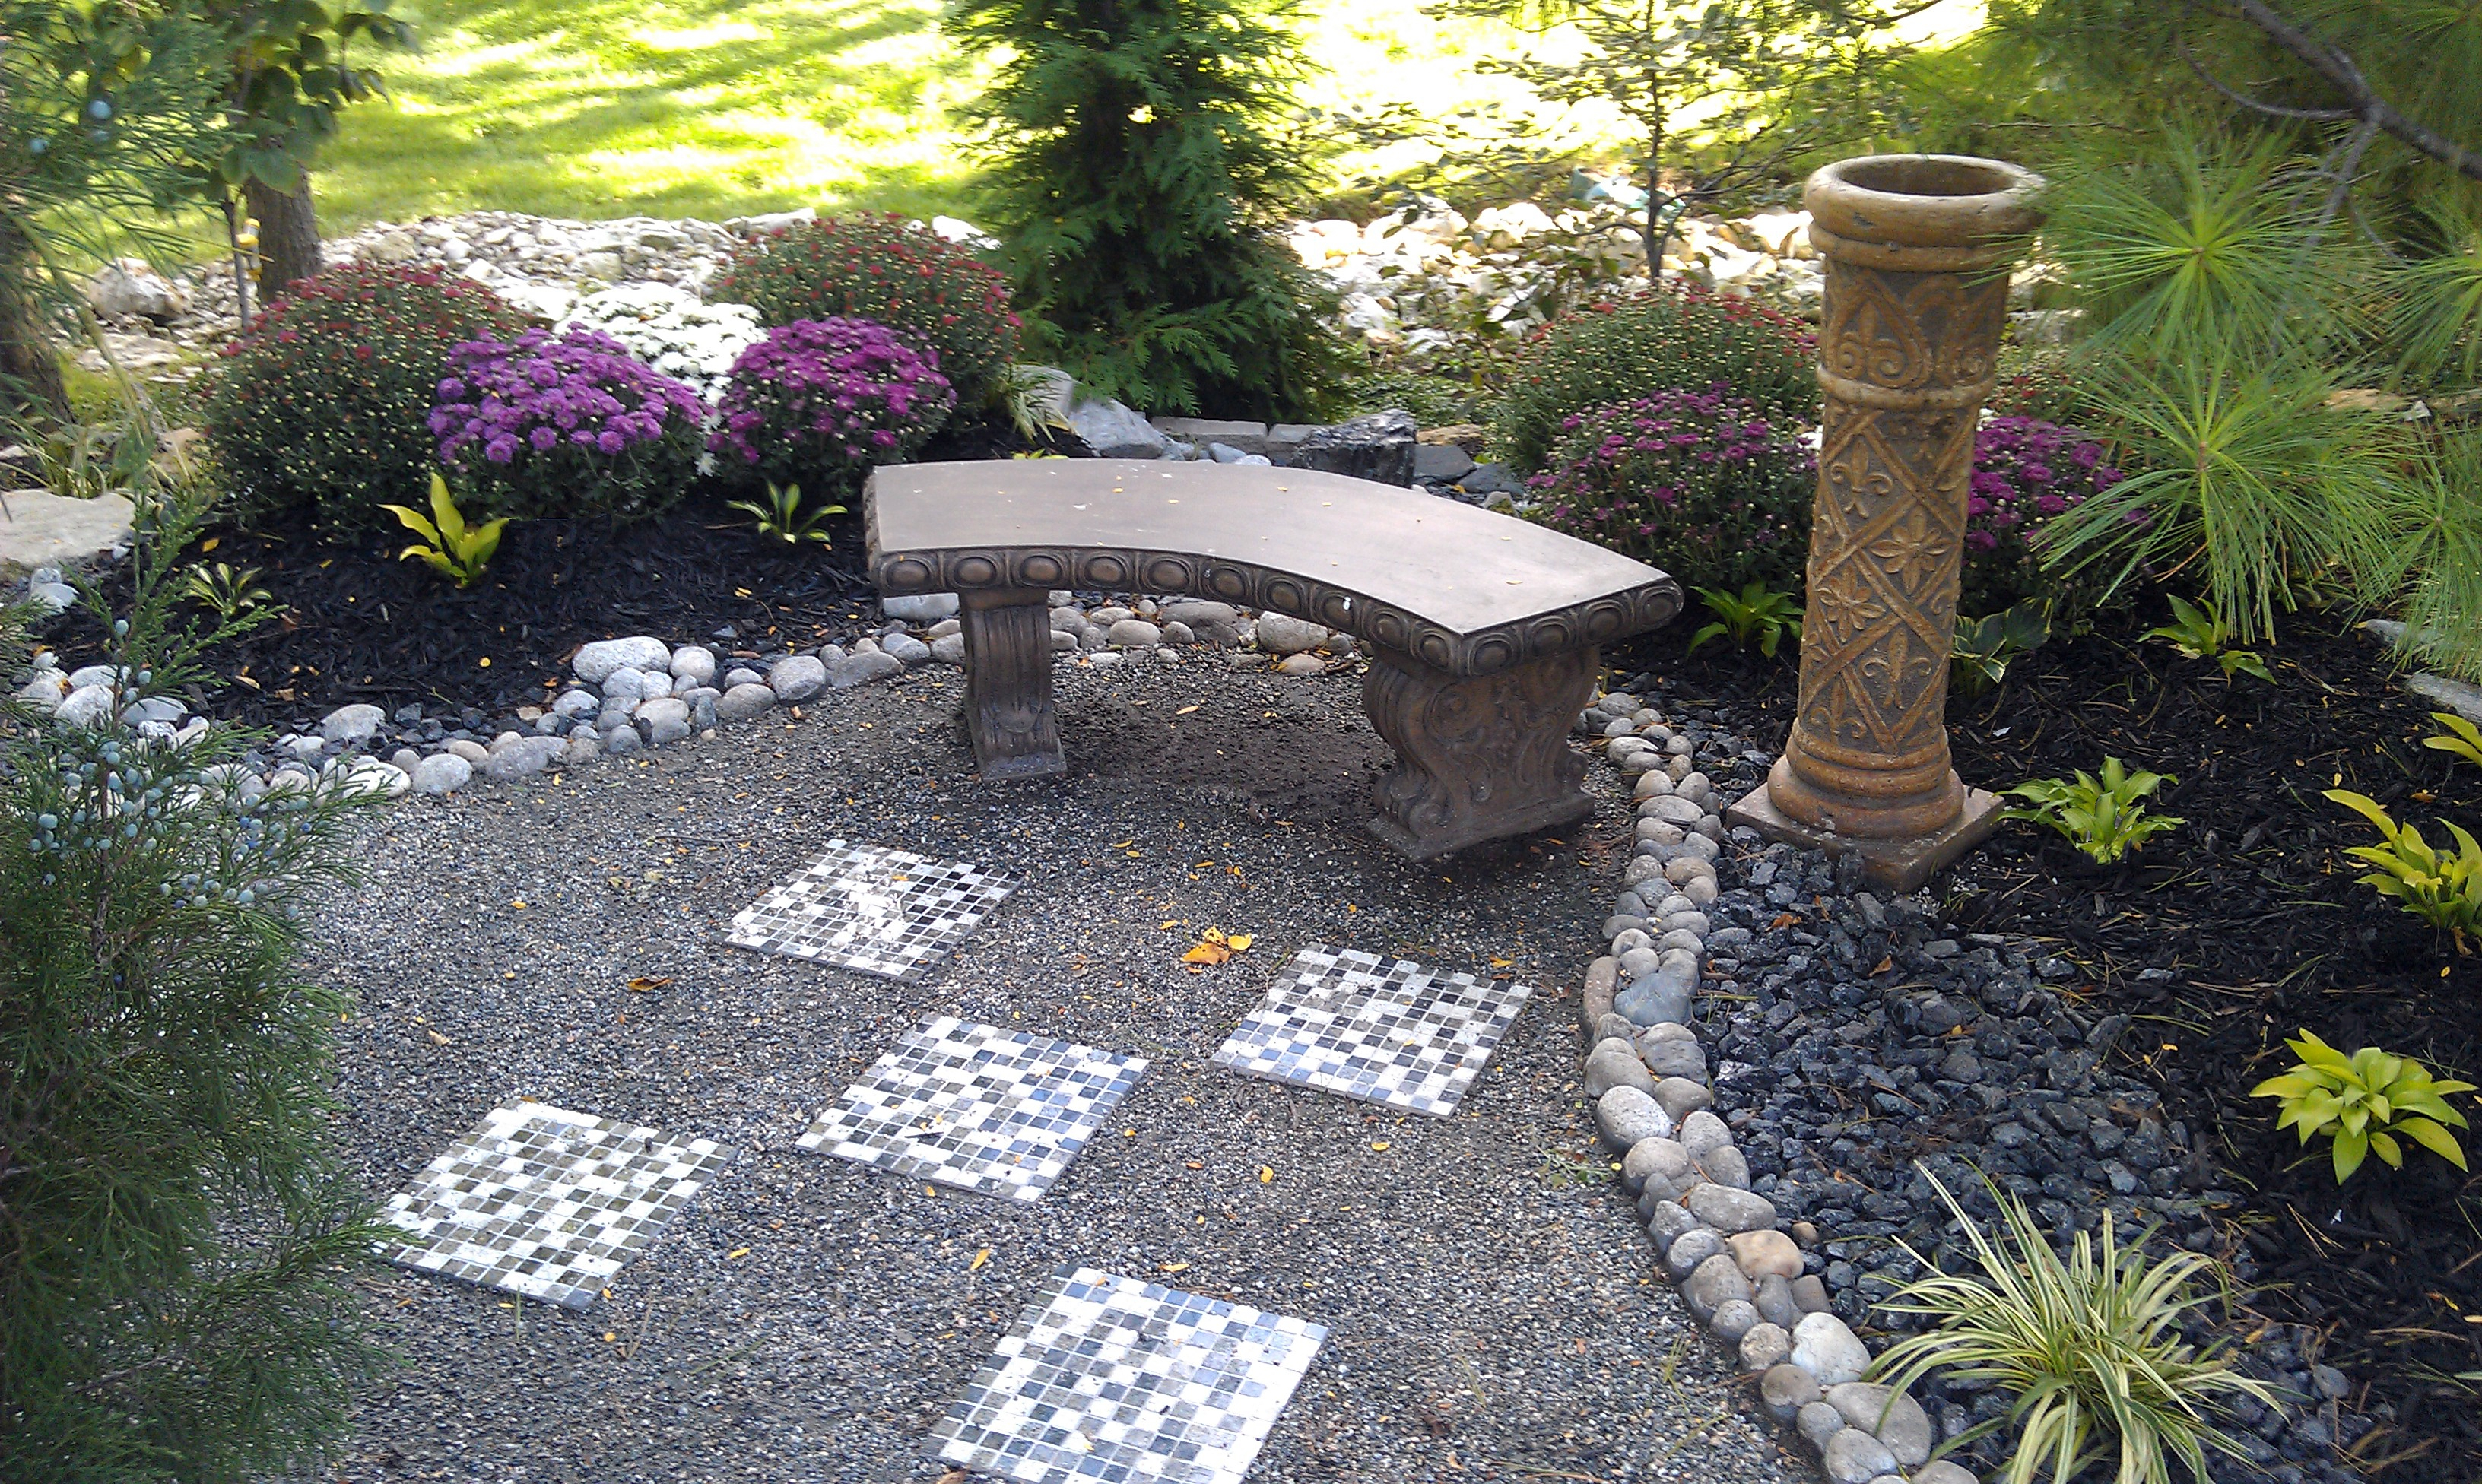 #8 after - View of bench and path